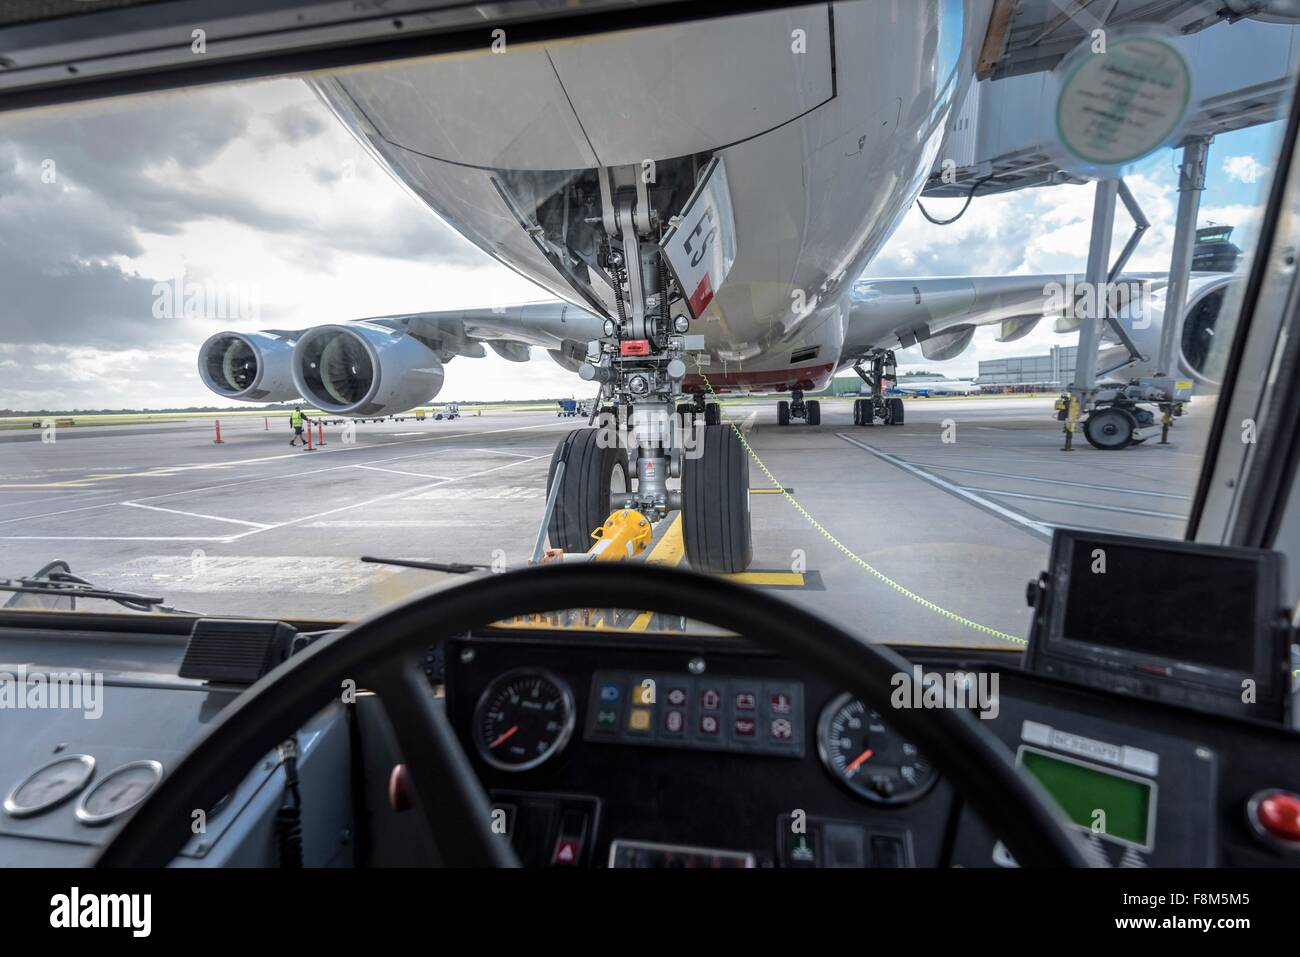 View of A380 aircraft from inside tug - Stock Image